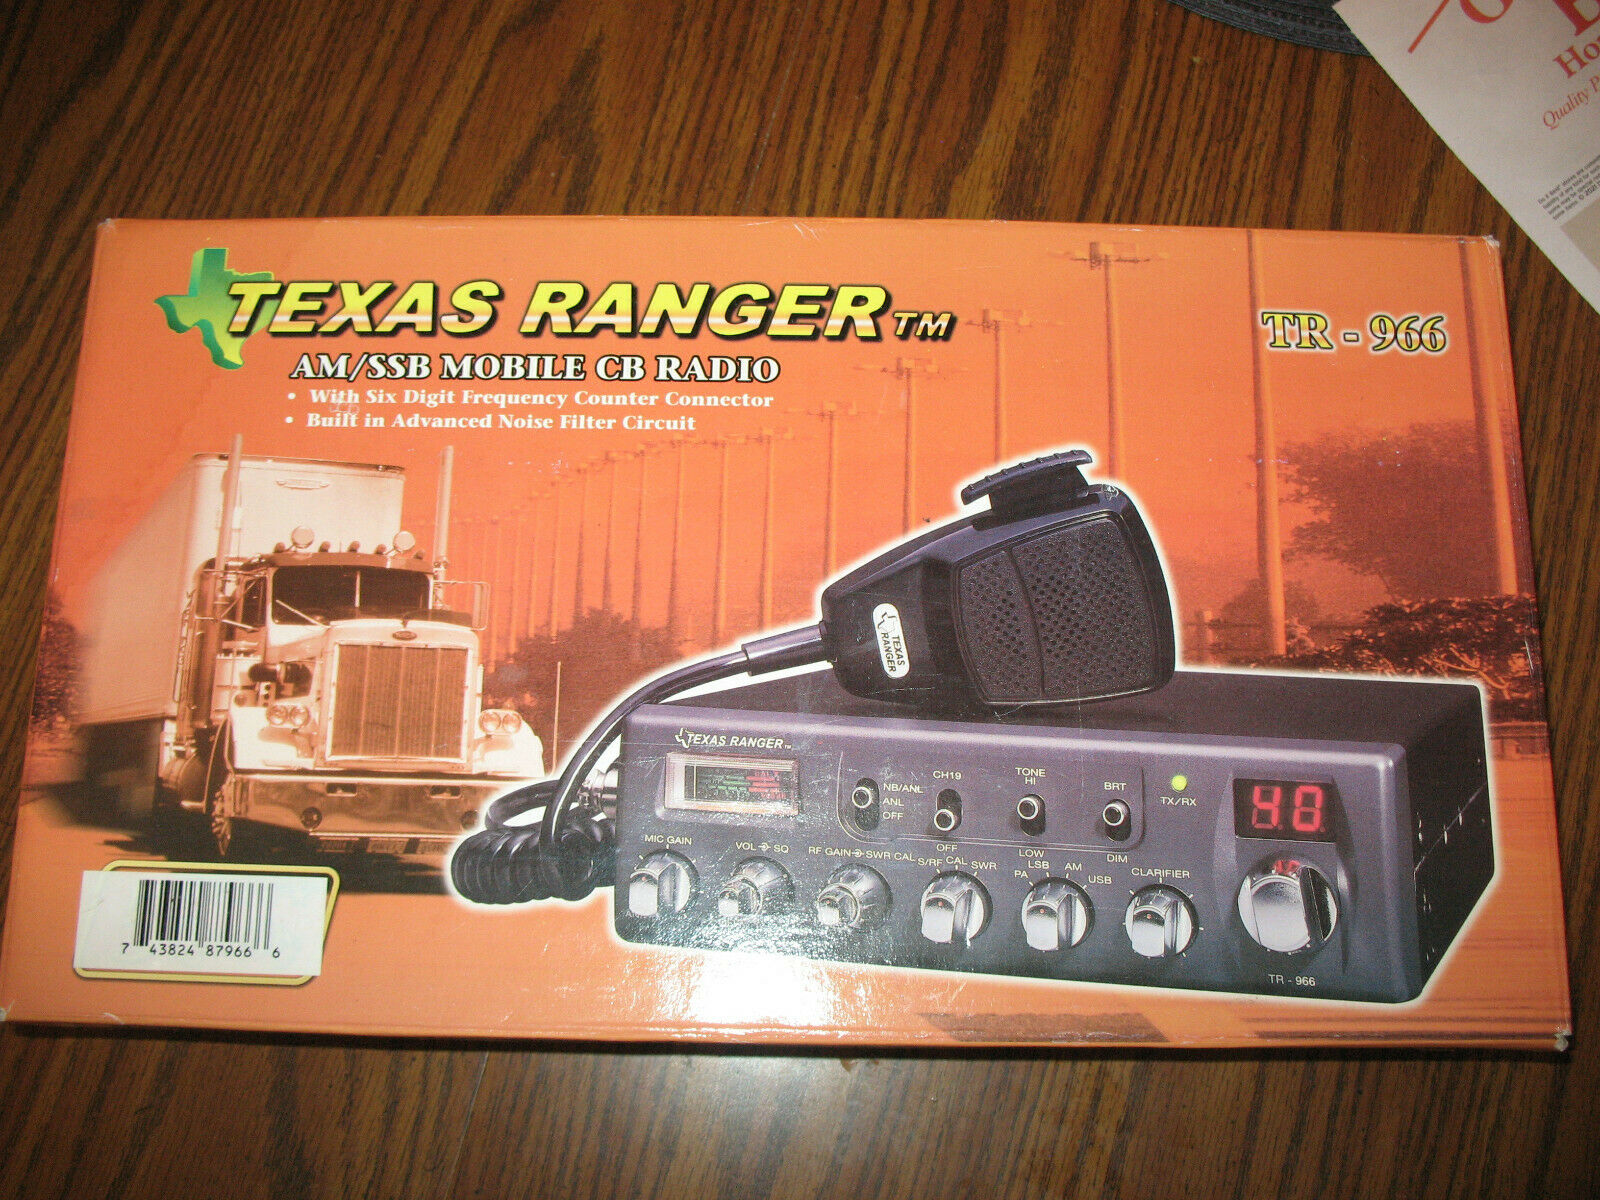 TEXAS RANGER CB RADIO MODEL TR-966 NEW WITH PAPERWORK OPEN BOX. Available Now for 249.00